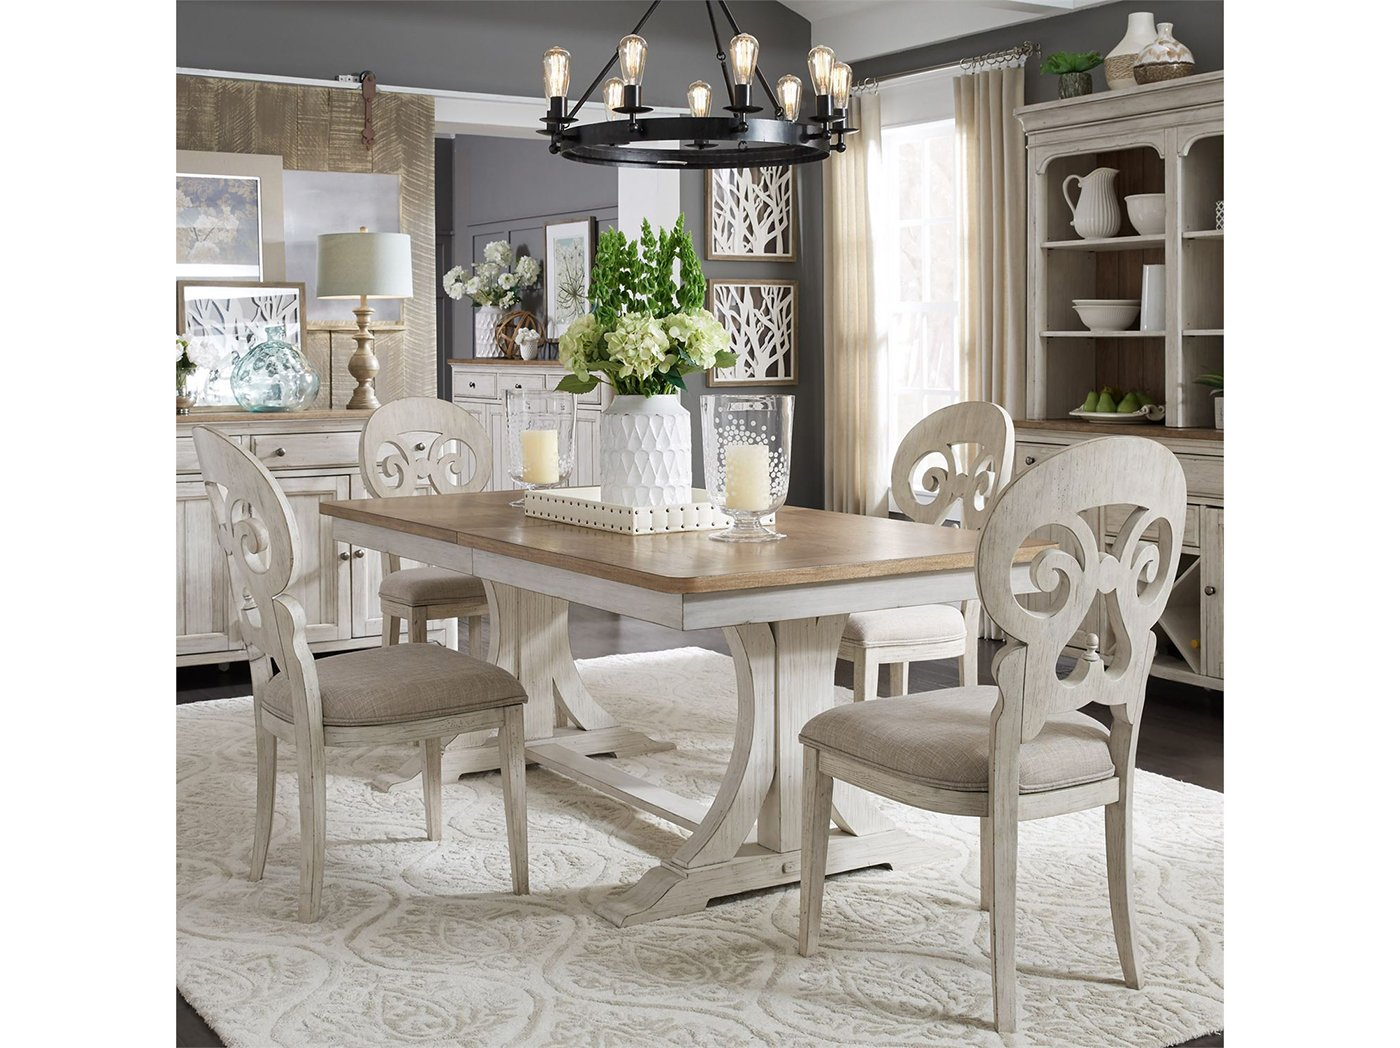 Farmhouse Reimagined 5-Piece Set with Splat Back Upholstered Side Chair